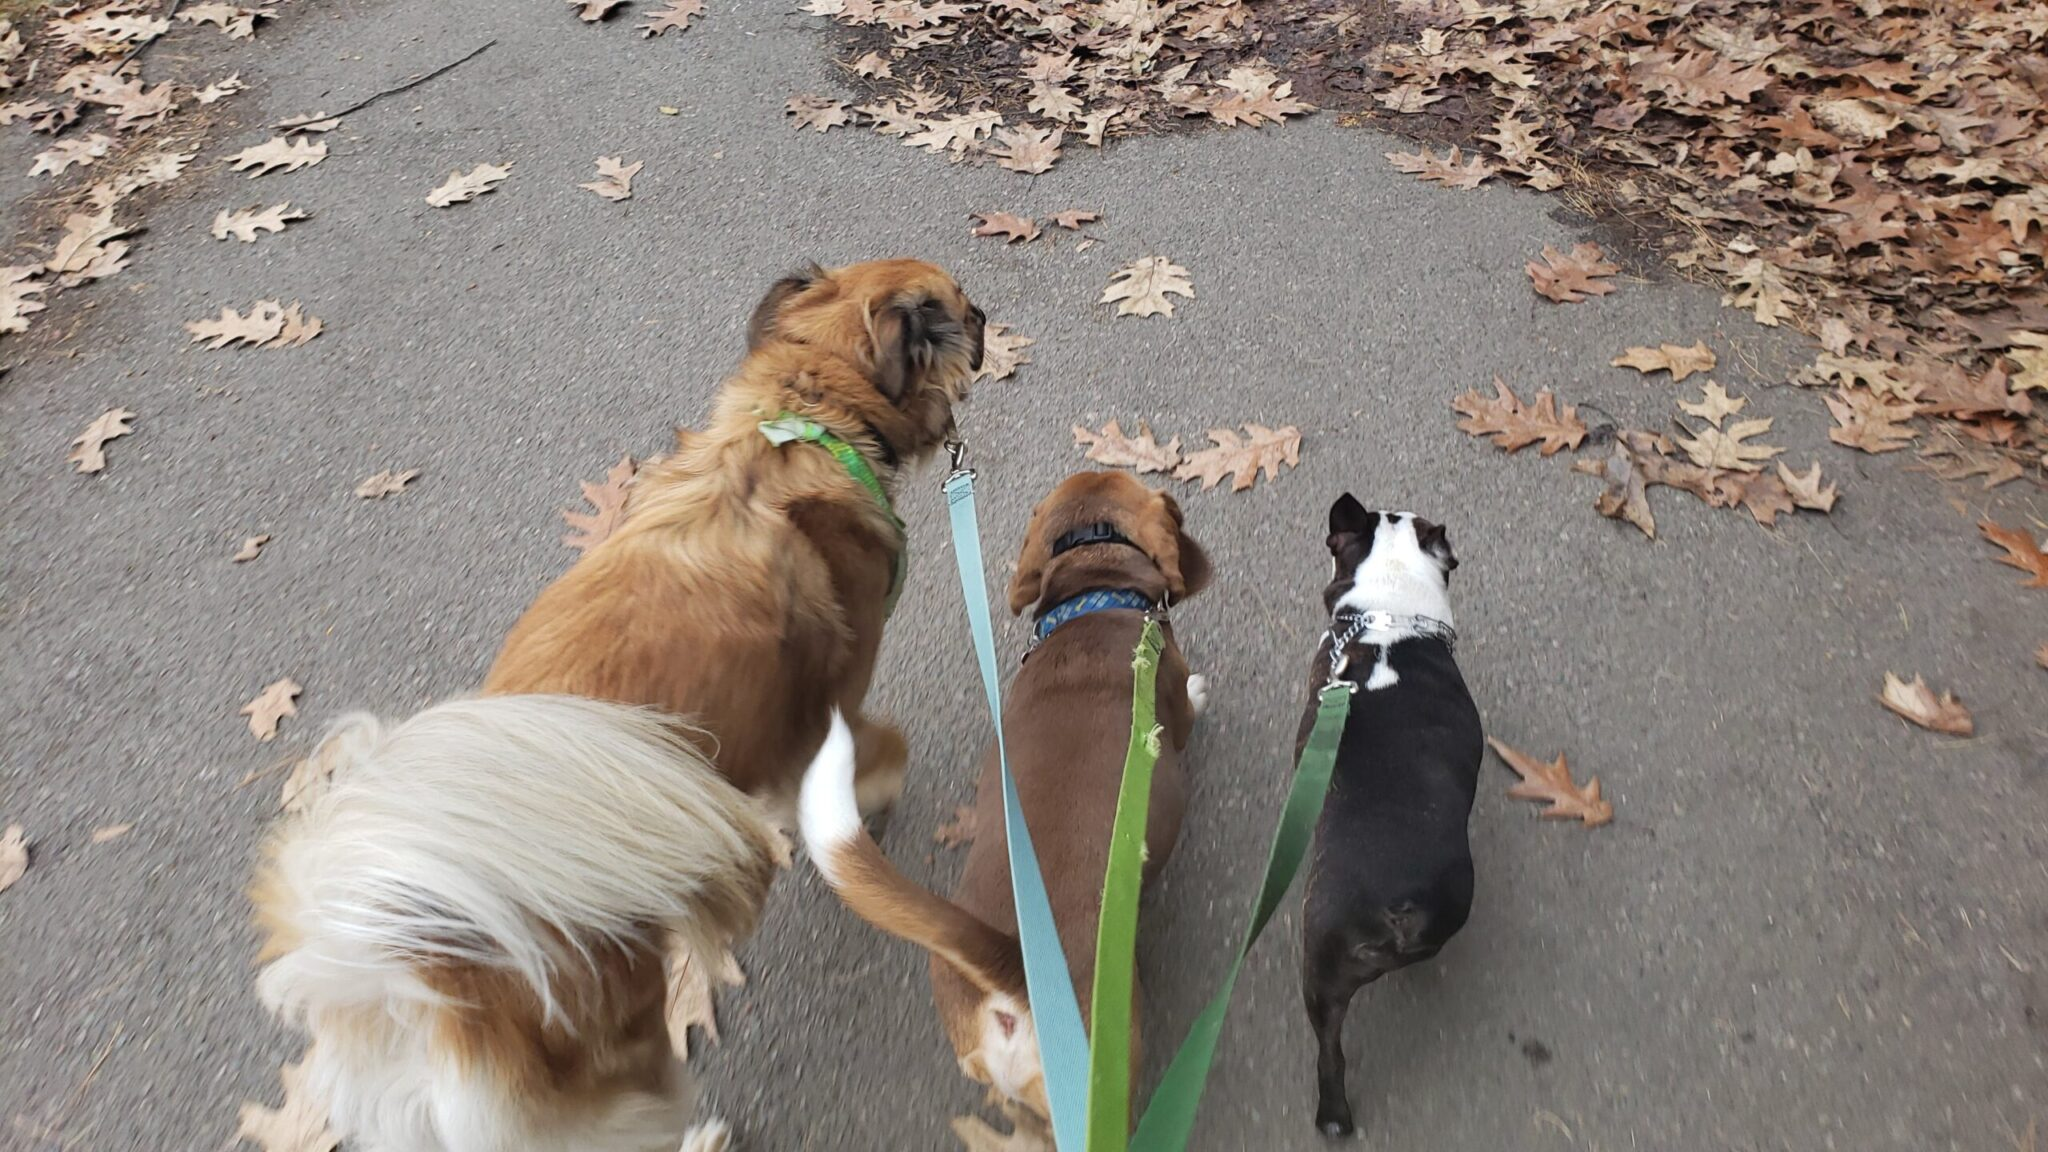 dog walking services by Muddy Paws gives your dog the ability to relieve themselves, walk with other dogs, and drain their energy with exercise